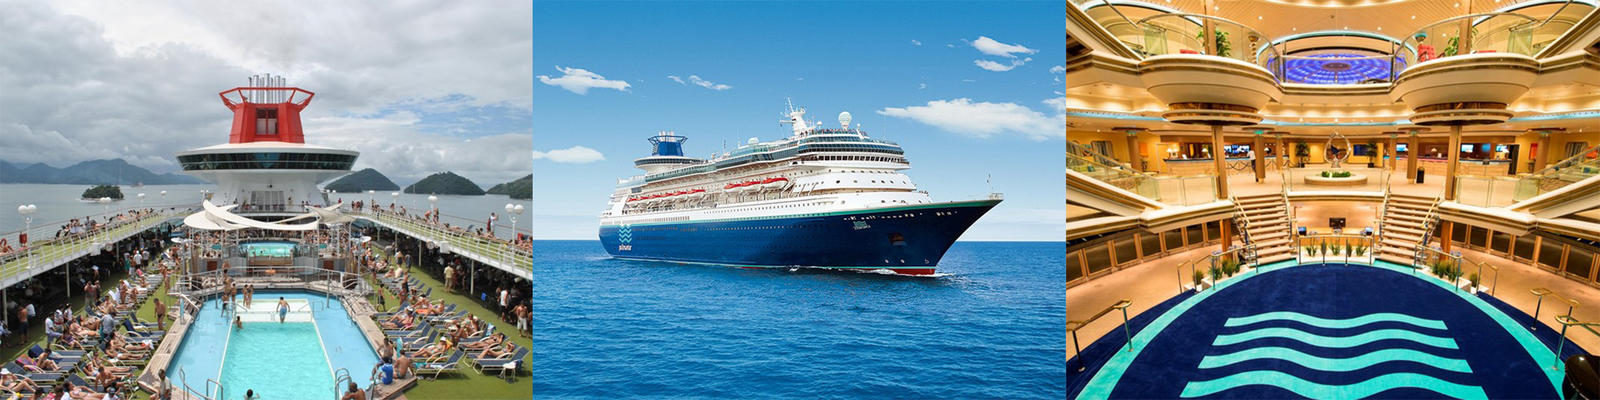 Best Pullmantur Cruises Reviews And Photos - Zenith cruise ship itinerary